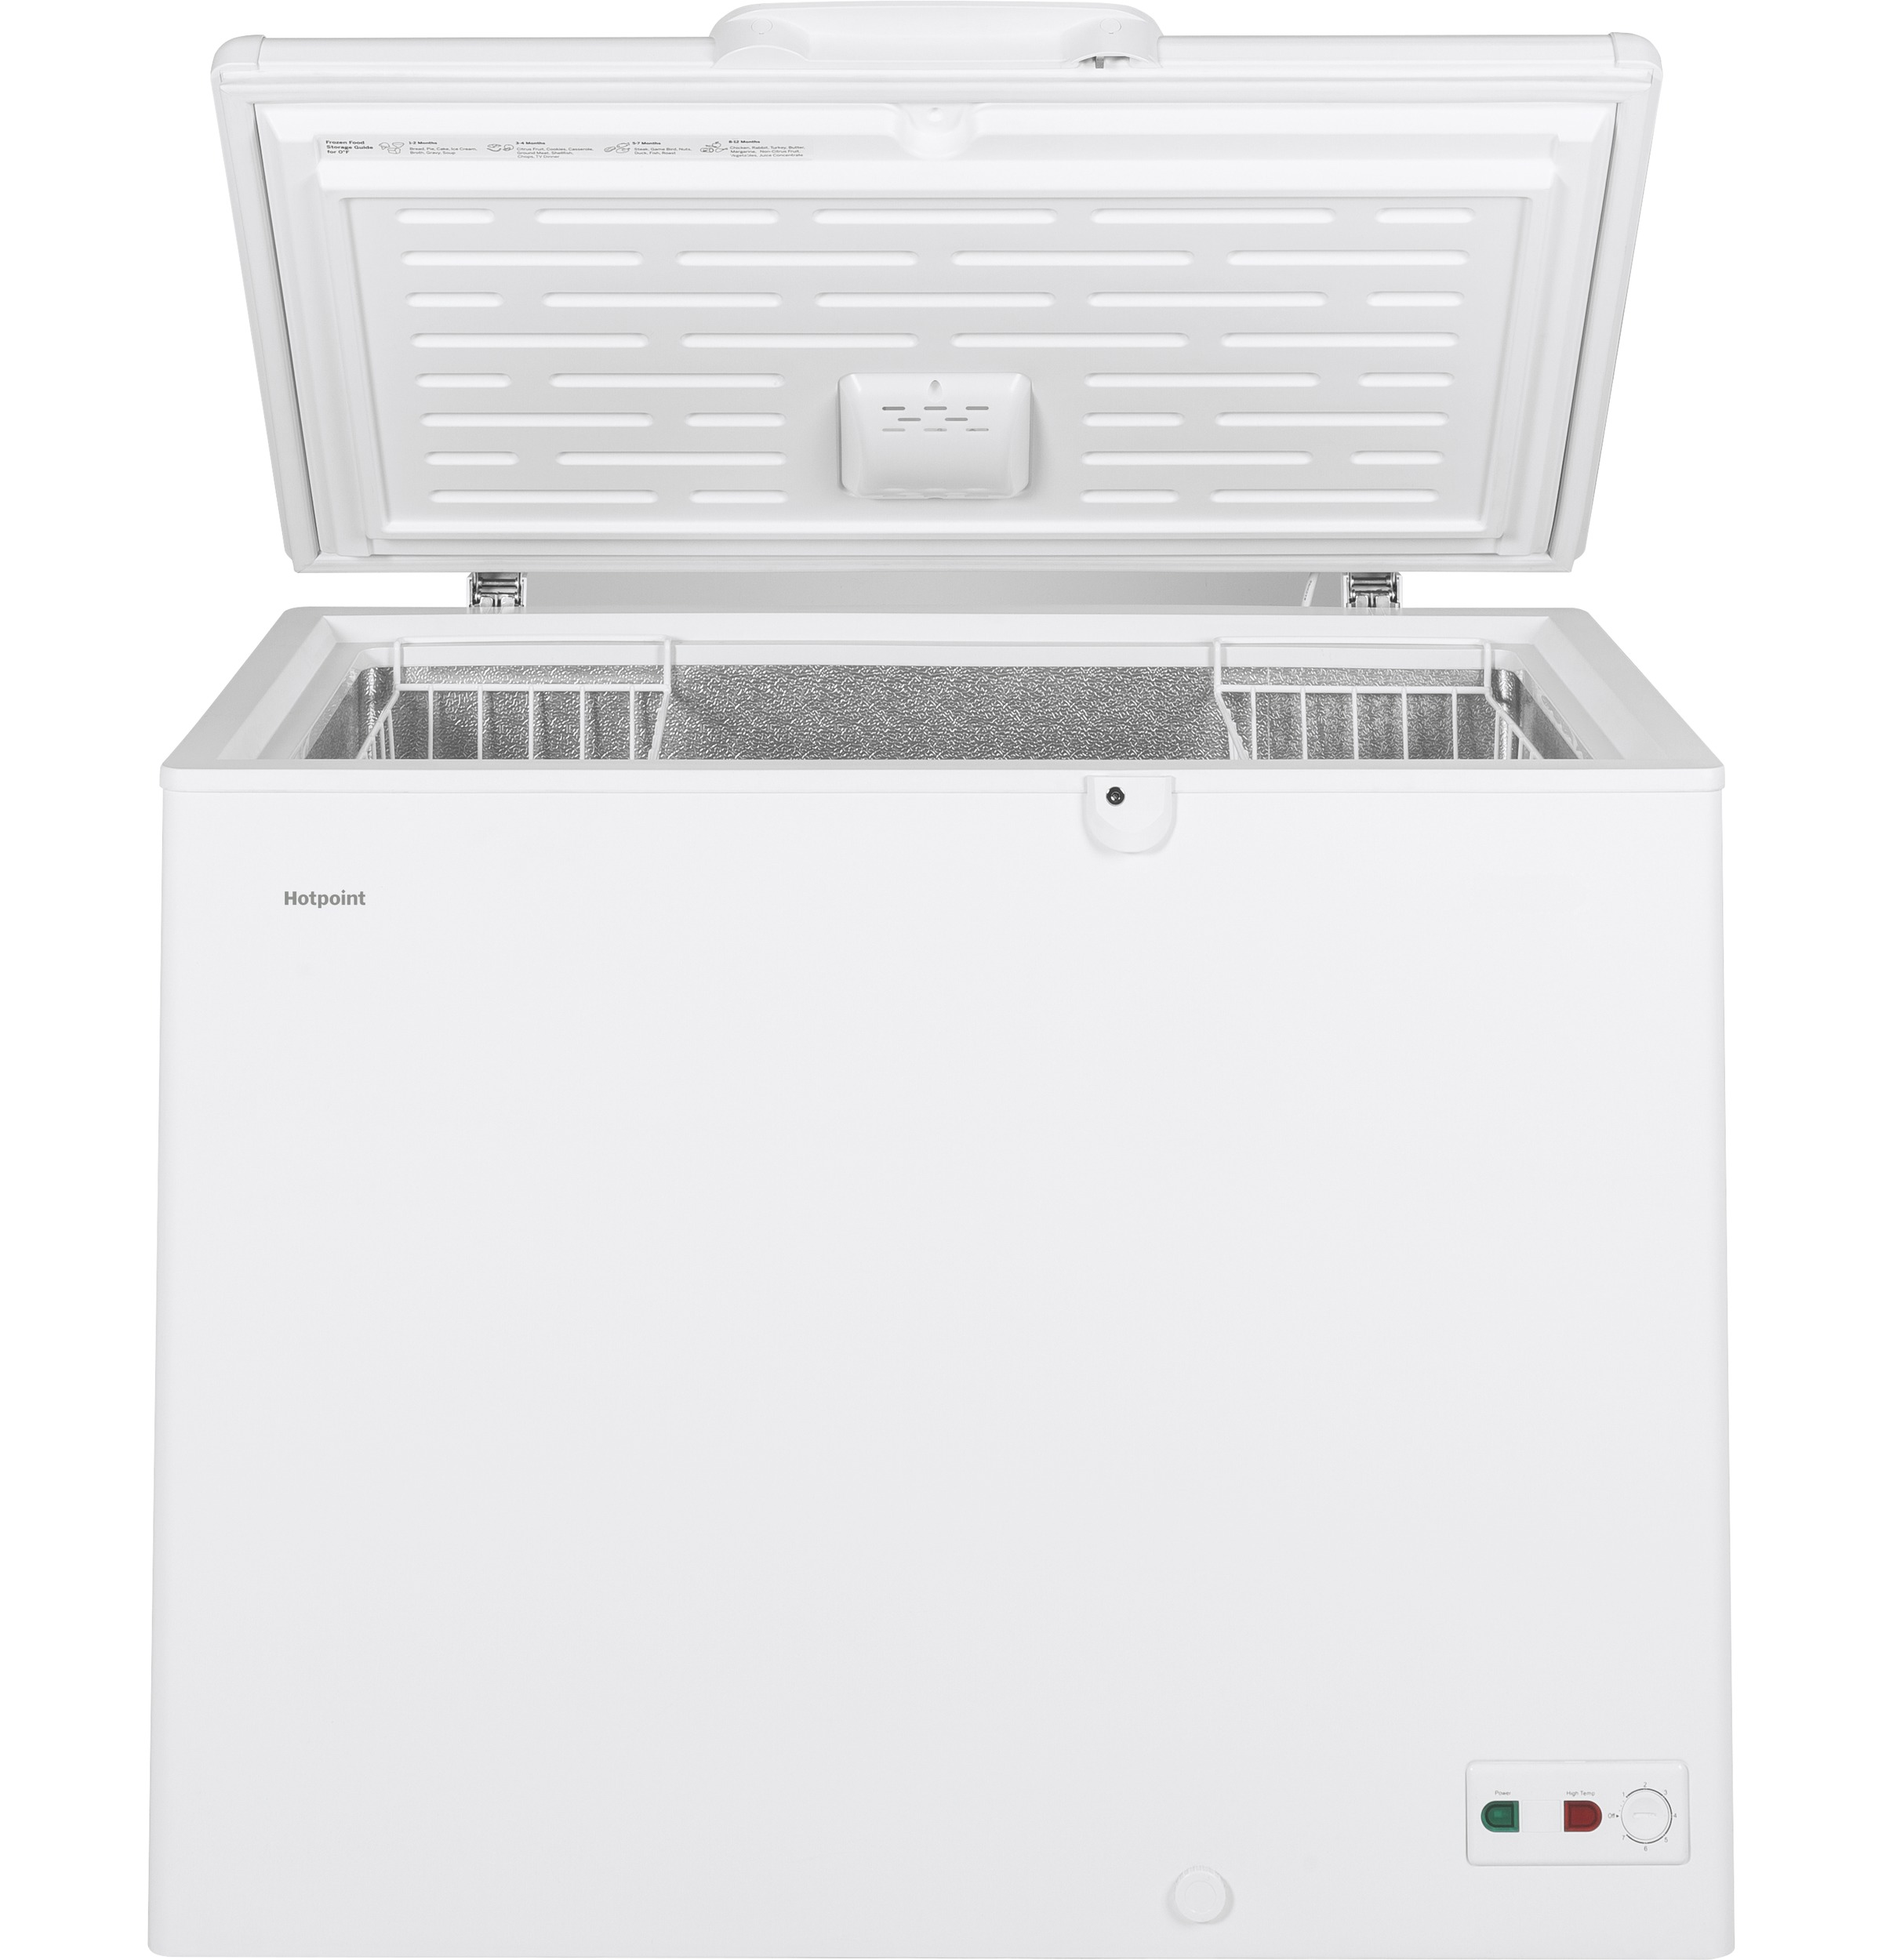 Model: HCM9DMWW | Hotpoint Hotpoint 9.4 Cu. Ft. Manual Defrost Chest Freezer